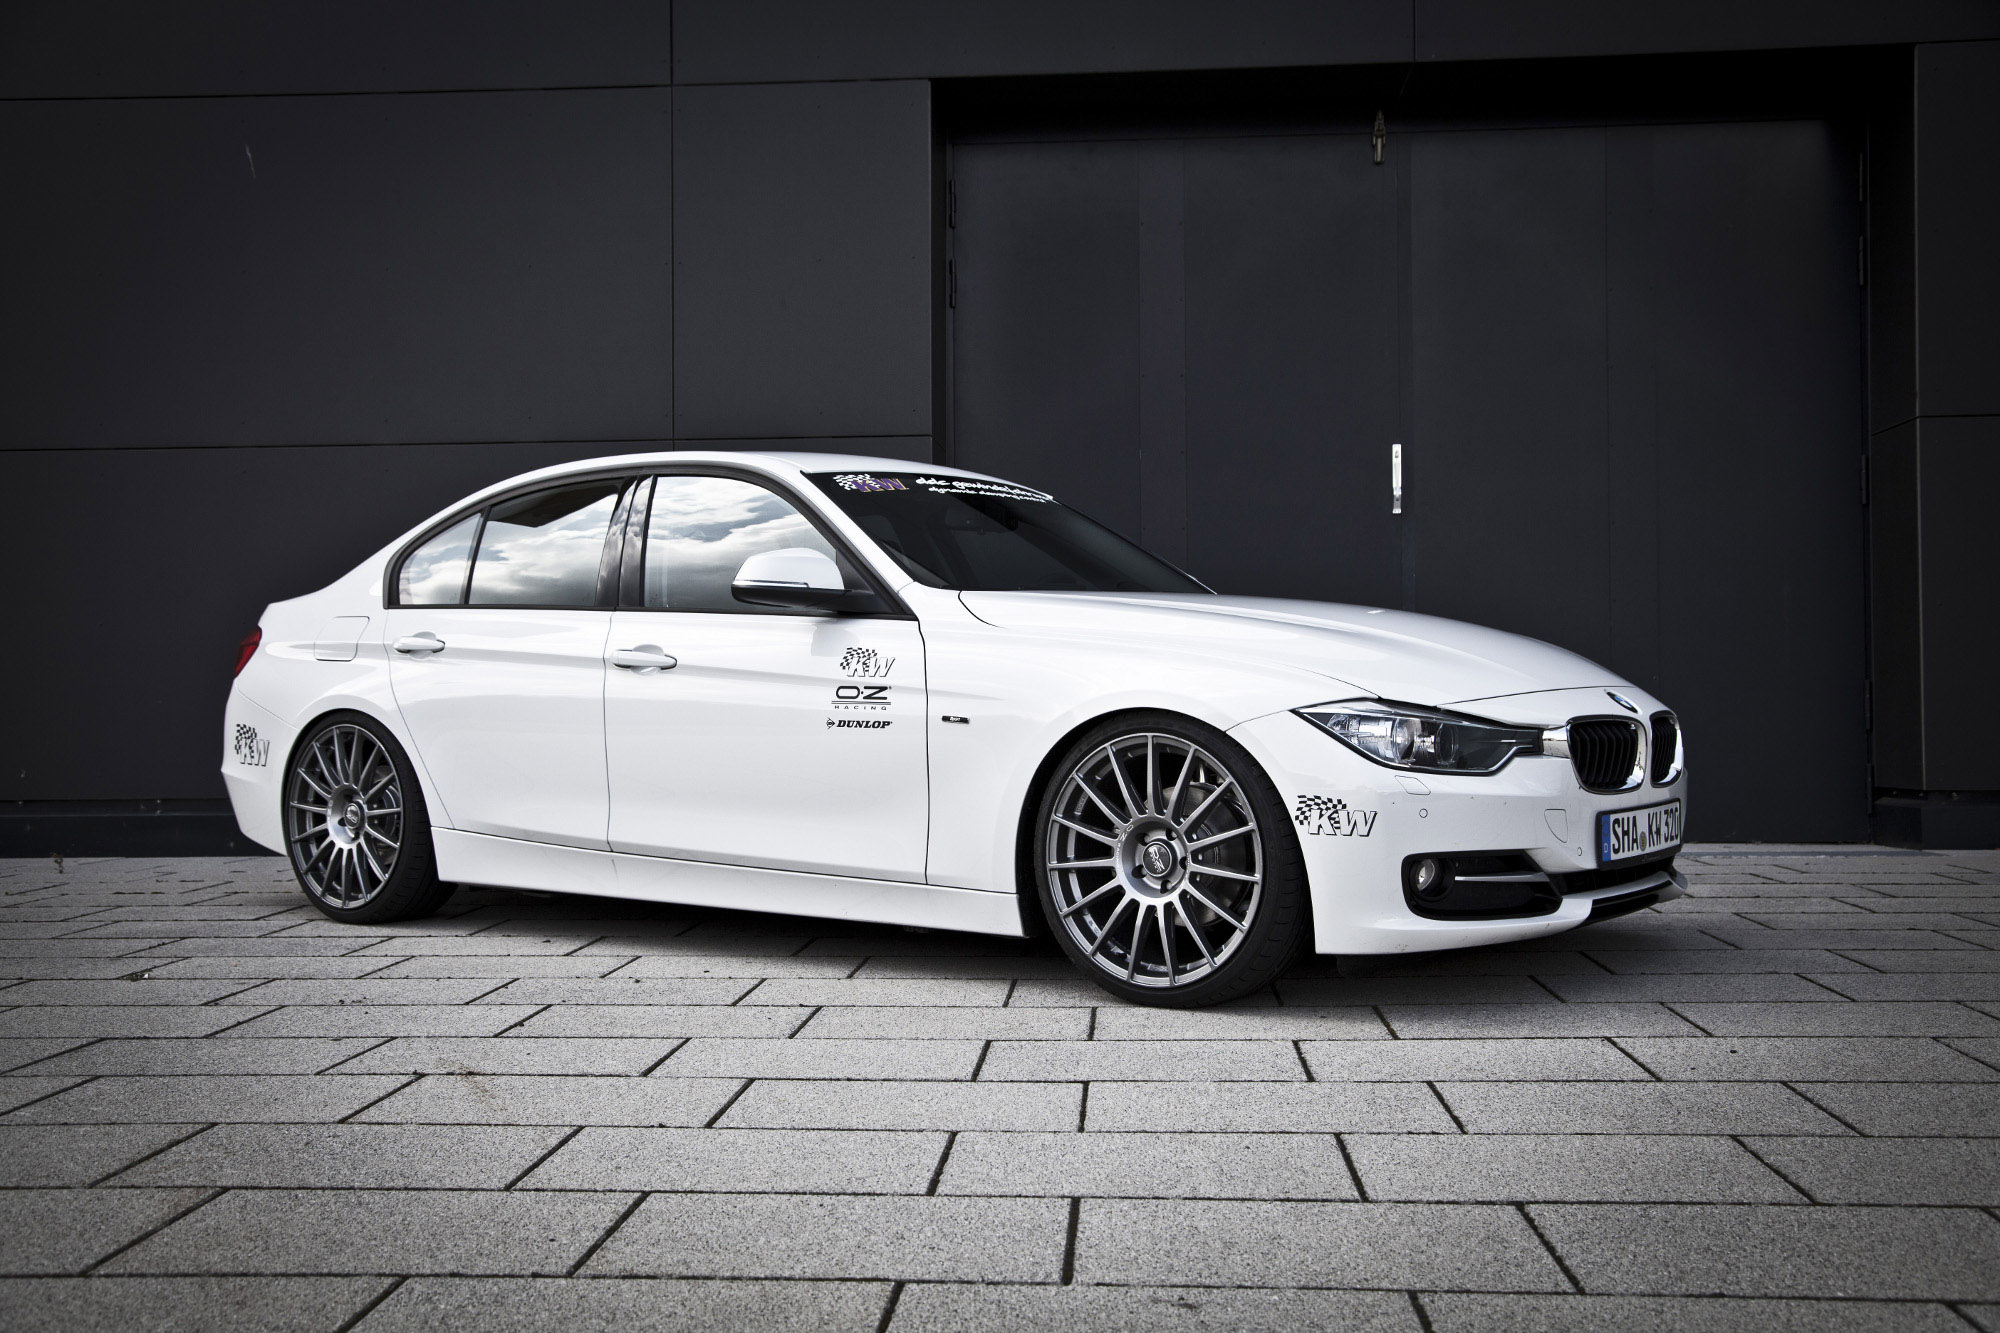 kw coilover kit for the new 2012 bmw 3 series f30. Black Bedroom Furniture Sets. Home Design Ideas